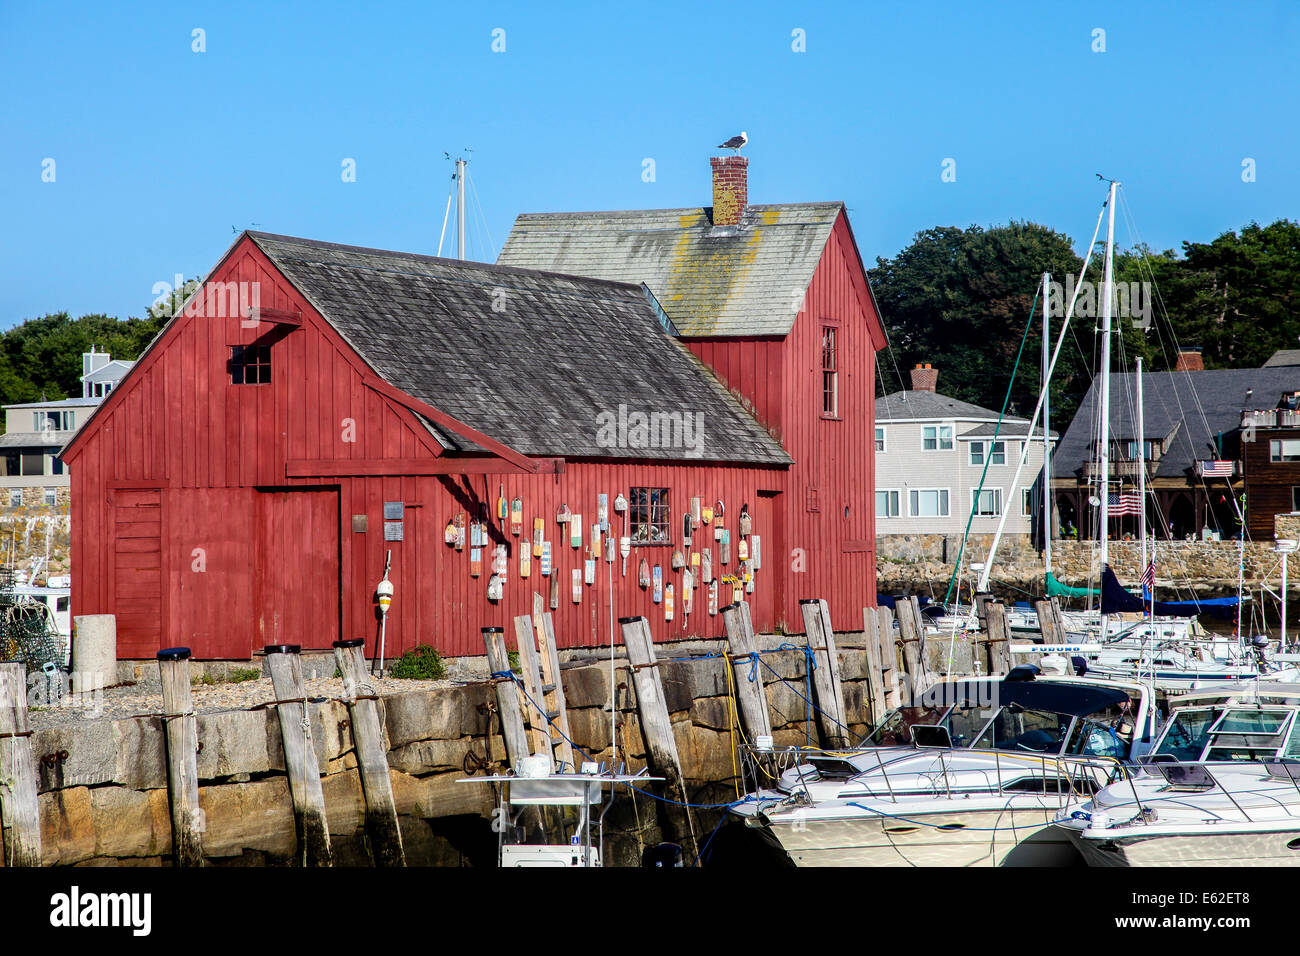 ROCKPORT-AUGUST 08:  A view of Rockport Harbour and the red building know as Motif Number One, Rockport, Massachusetts, - Stock Image